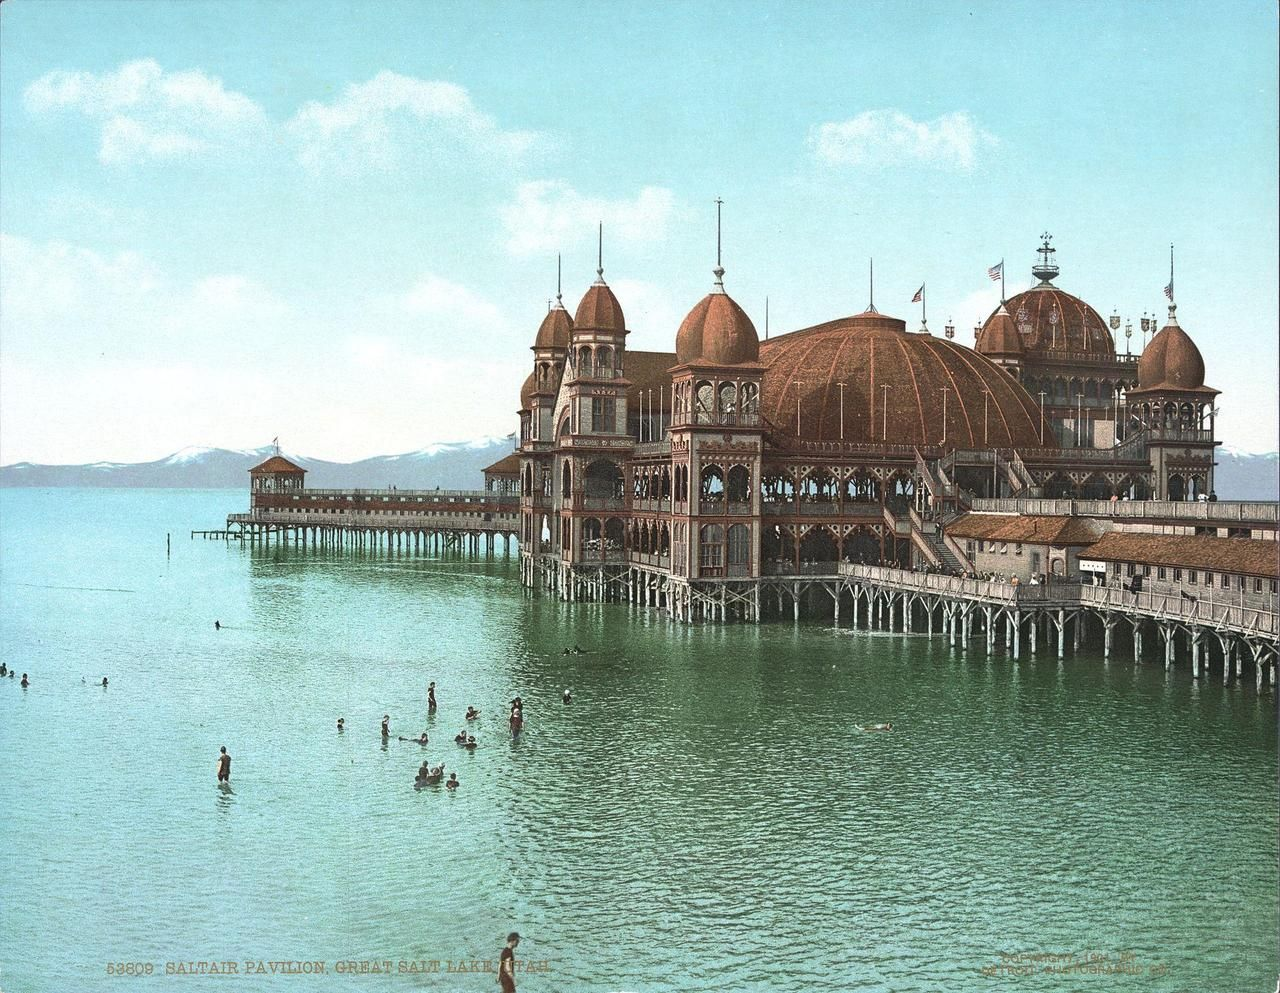 historicaltimes:  Saltair Pavilion, Great Salt Lake- 1900 Had you not been destroyed in a fine in 1925 you would make a wonderful addition to the Atlas Obscura database